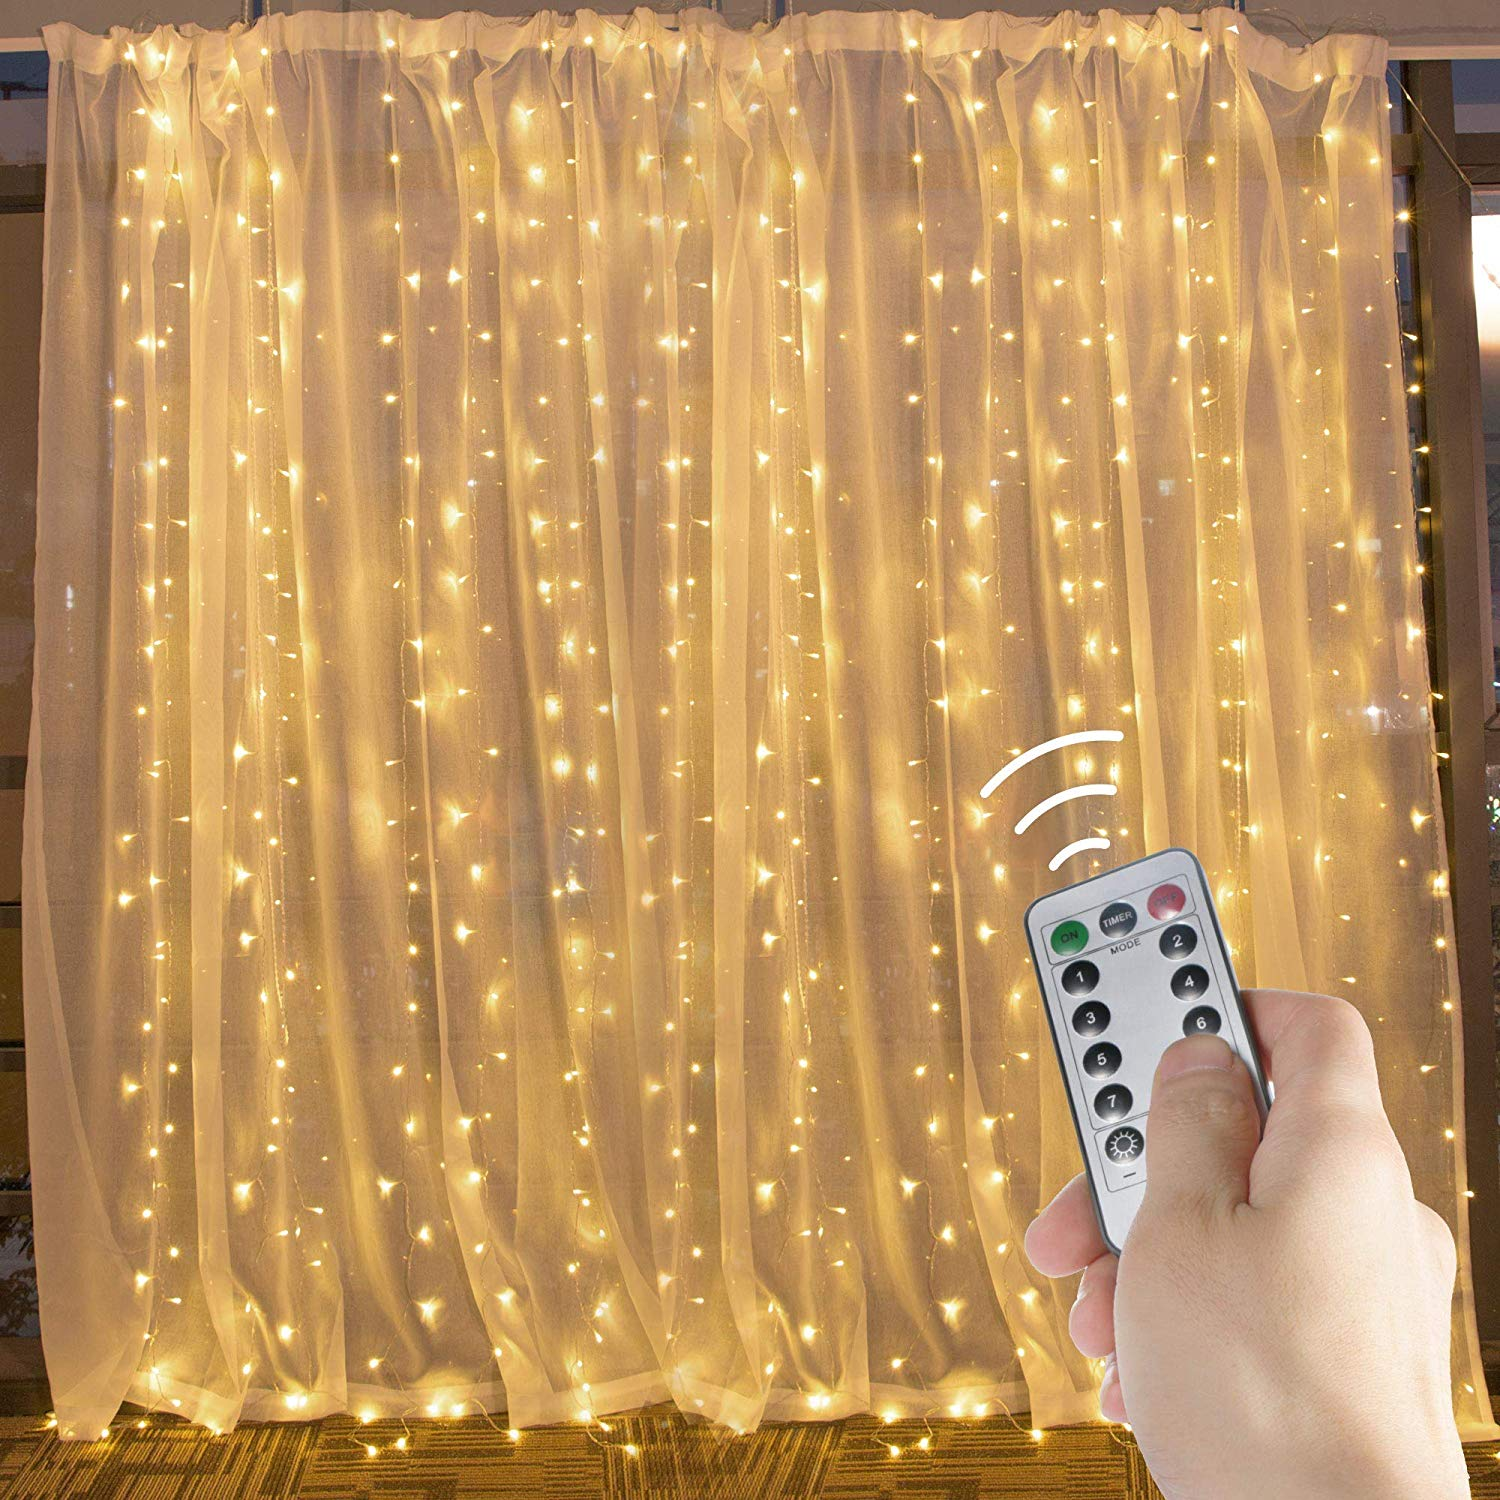 Curtain String Lights 100 Led Window Lights For Christmas Bedroom Parties Wedding Patio Decorative Indoor Outdoor 8 Modes Curtain Lights Walmart Canada